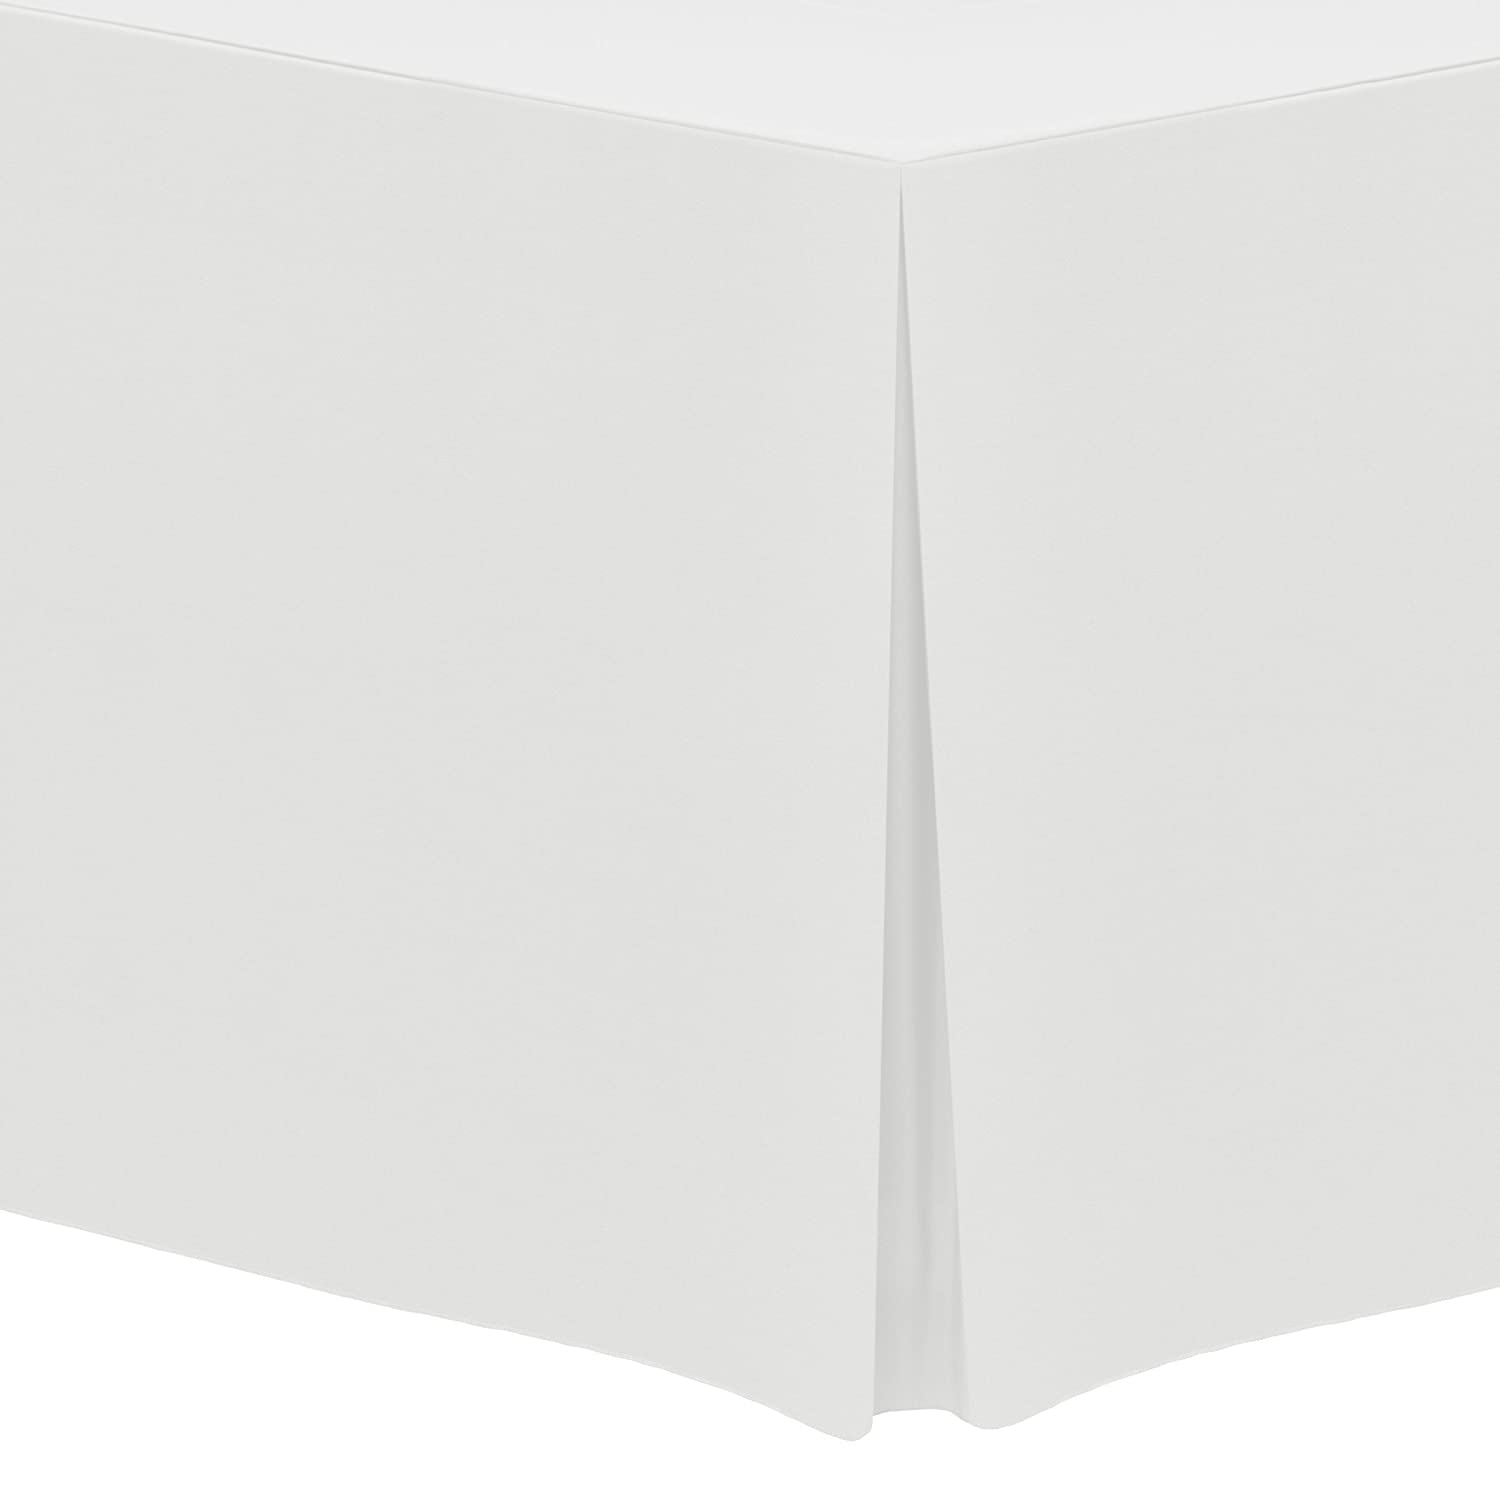 """Ultimate Textile -2 Pack- 4 ft. Fitted Polyester Tablecloth - Fits 24 x 48-Inch Rectangular Tables 36"""" High, White"""